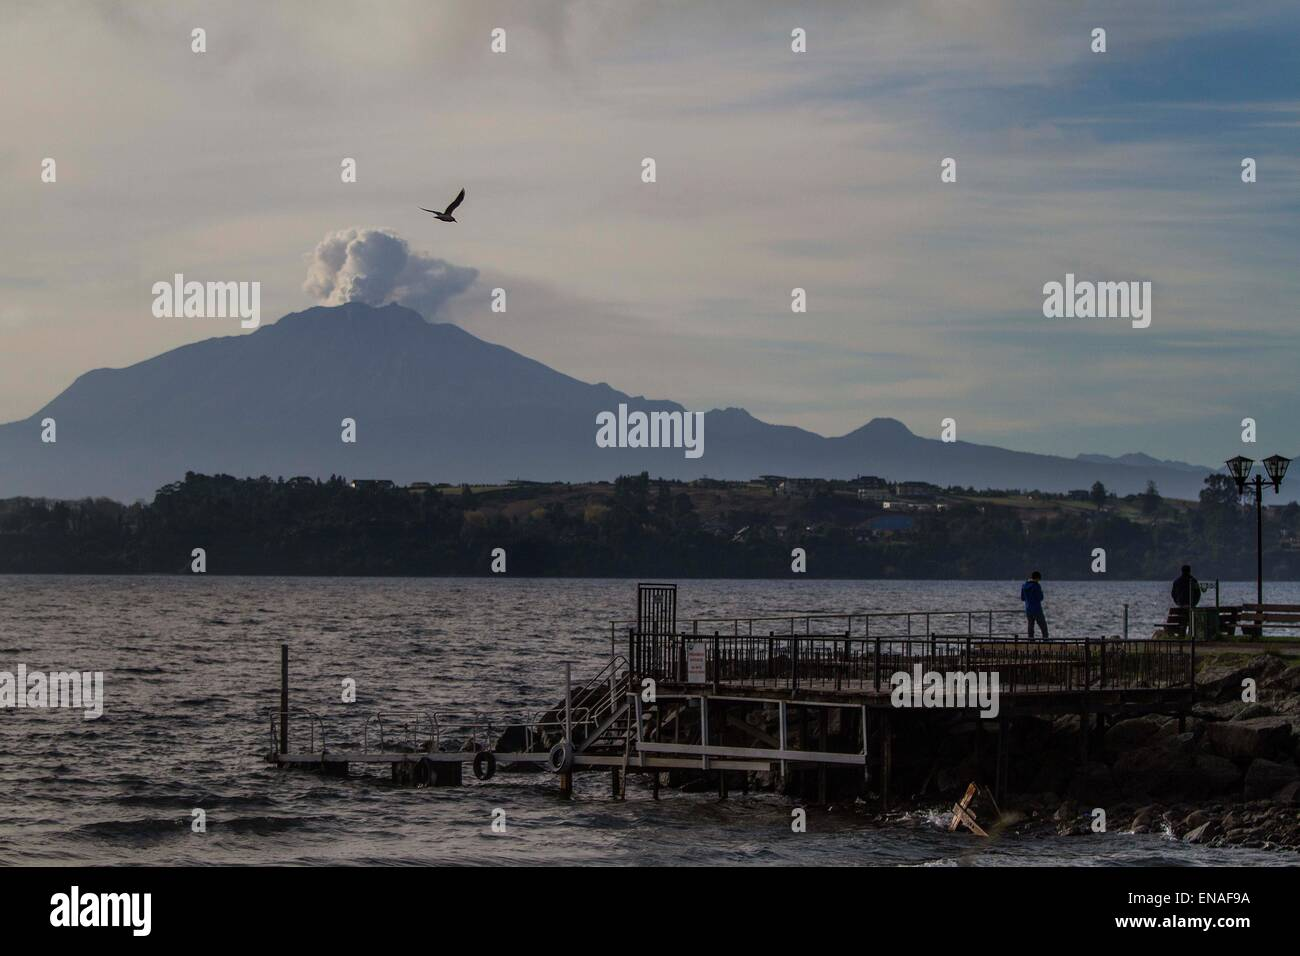 Puerto Varas, Chile. 30th Apr, 2015. Smoke and ash rise from the Calbuco volcano in Puerto Varas, Llanquihue province, - Stock Image